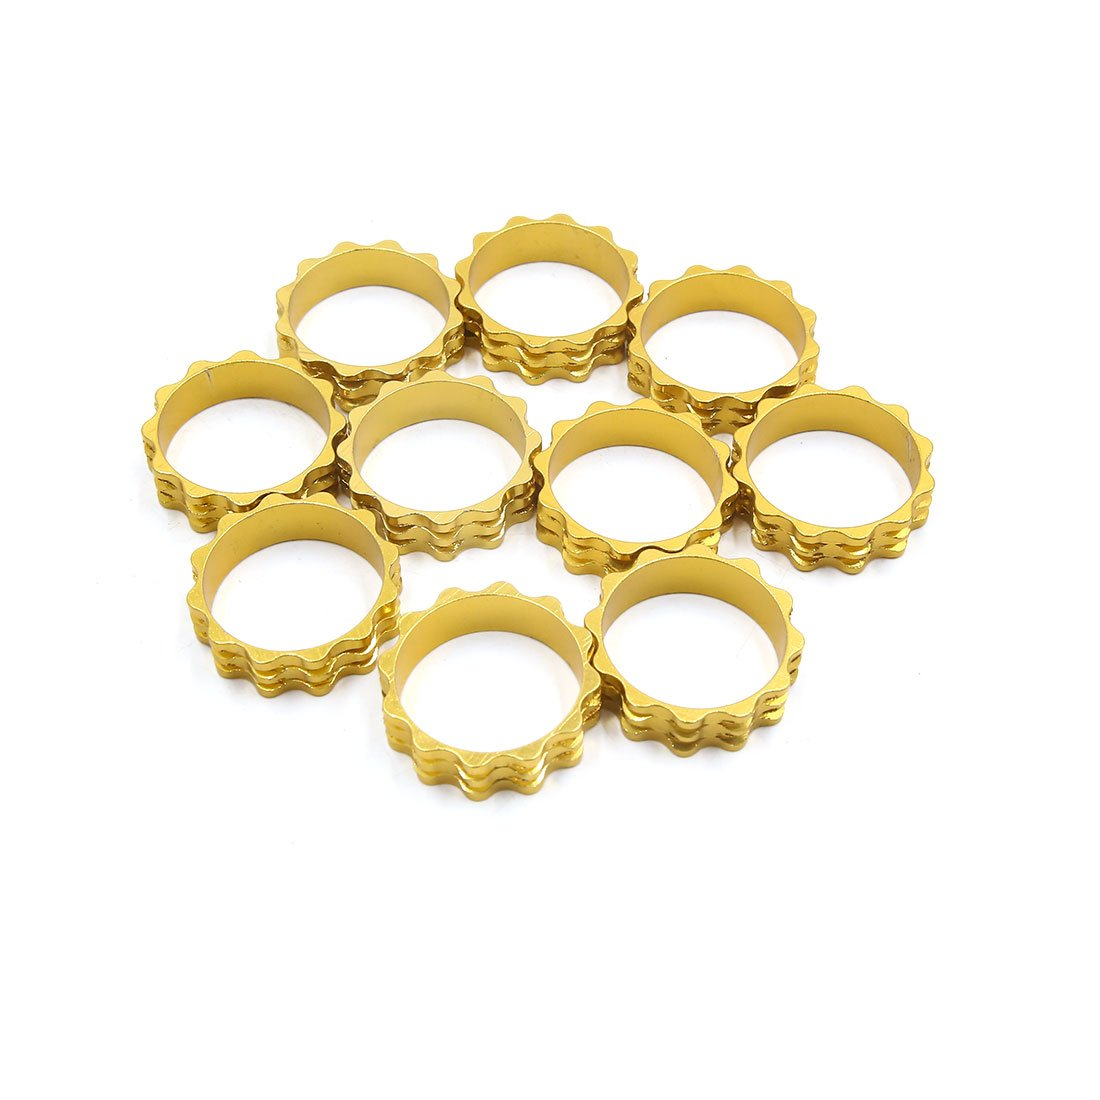 Sourcingmap 10 Pcs 28.6 x 10mm Gold Tone Headset Spacer Fork Stem Washer for MTB Bike Bicycle